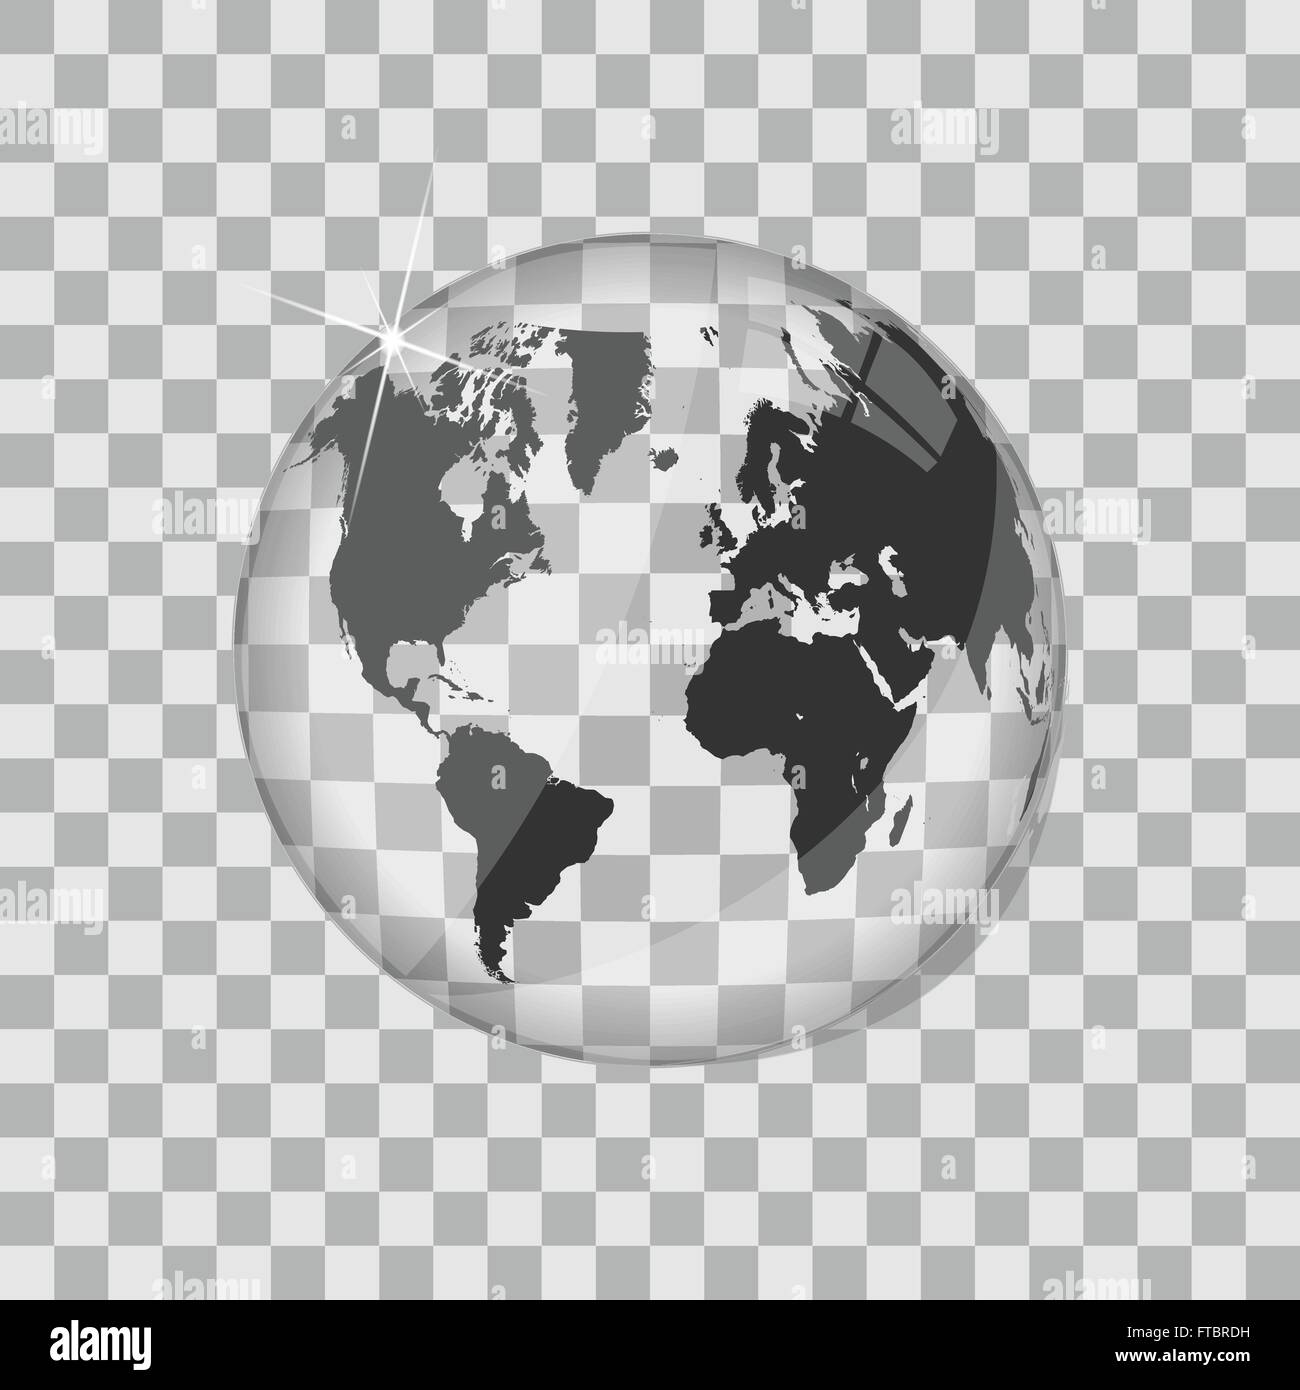 World map glass globe vector illustration stock vector art world map glass globe vector illustration gumiabroncs Choice Image